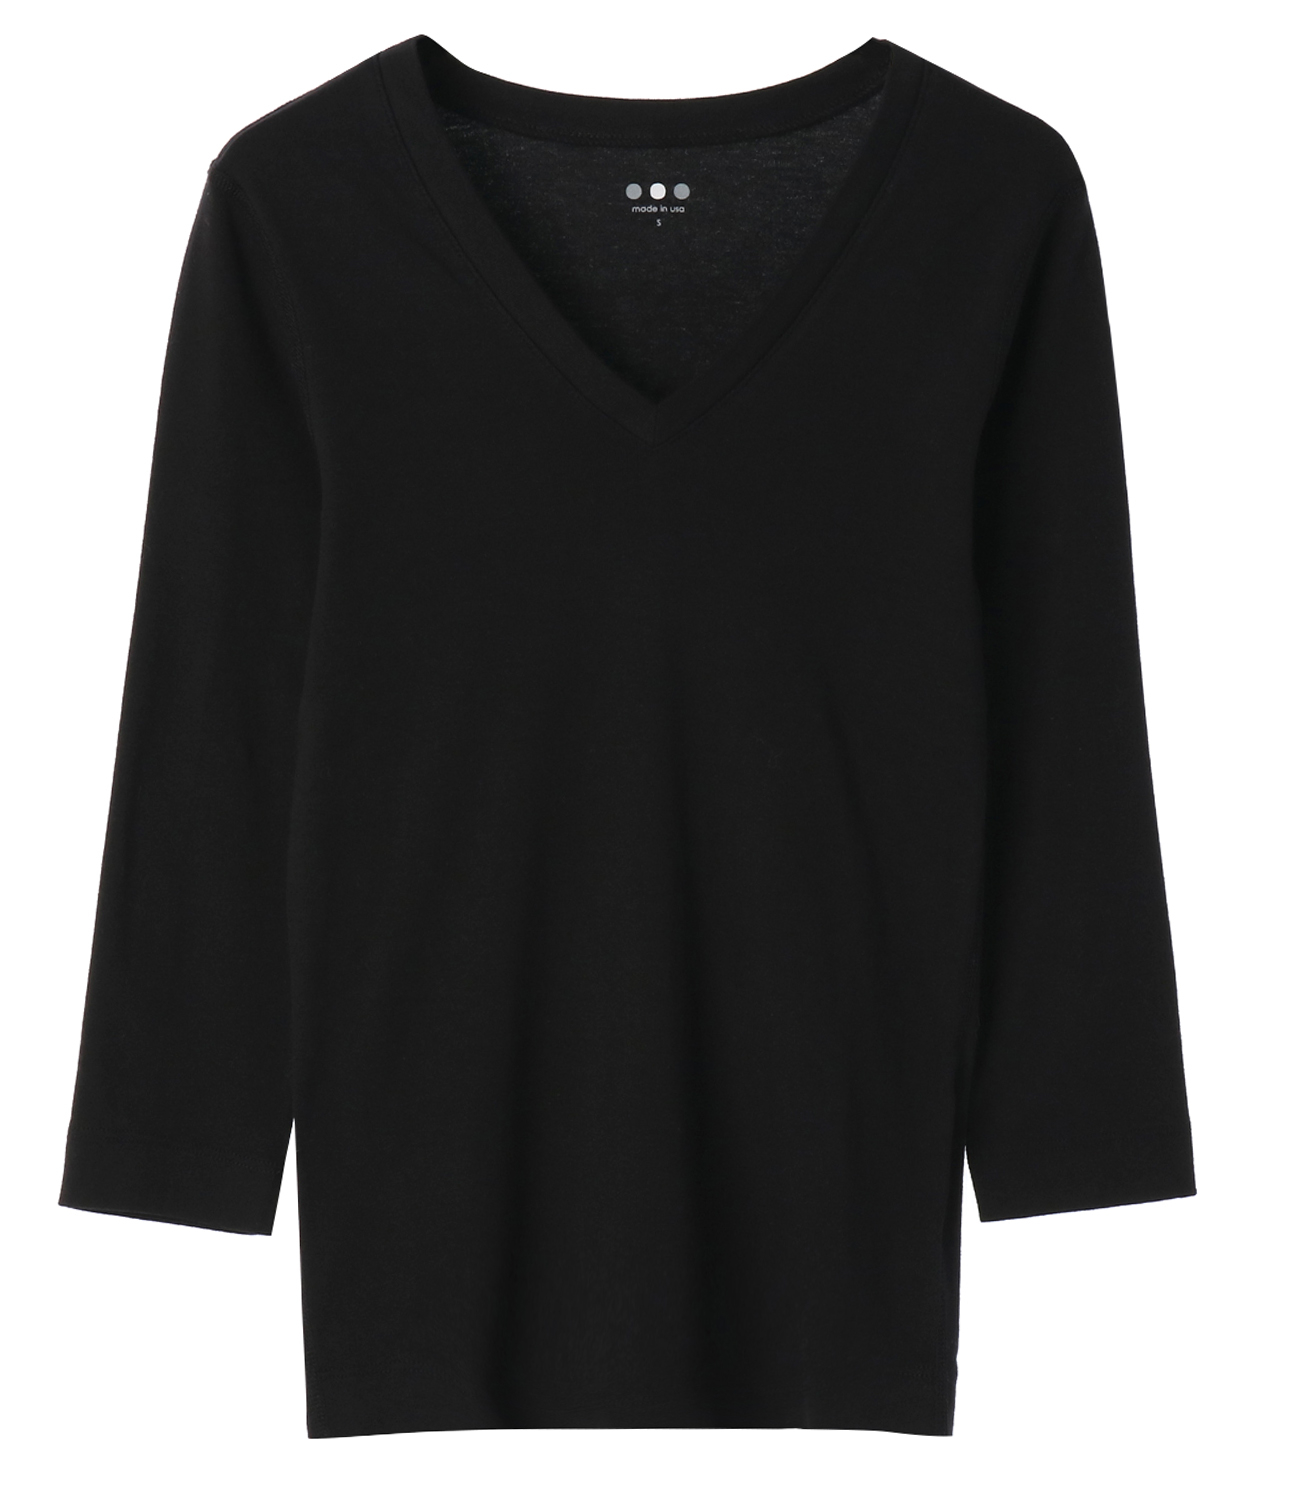 cotton knits 3/4 v-neck nicole 詳細画像 black 1